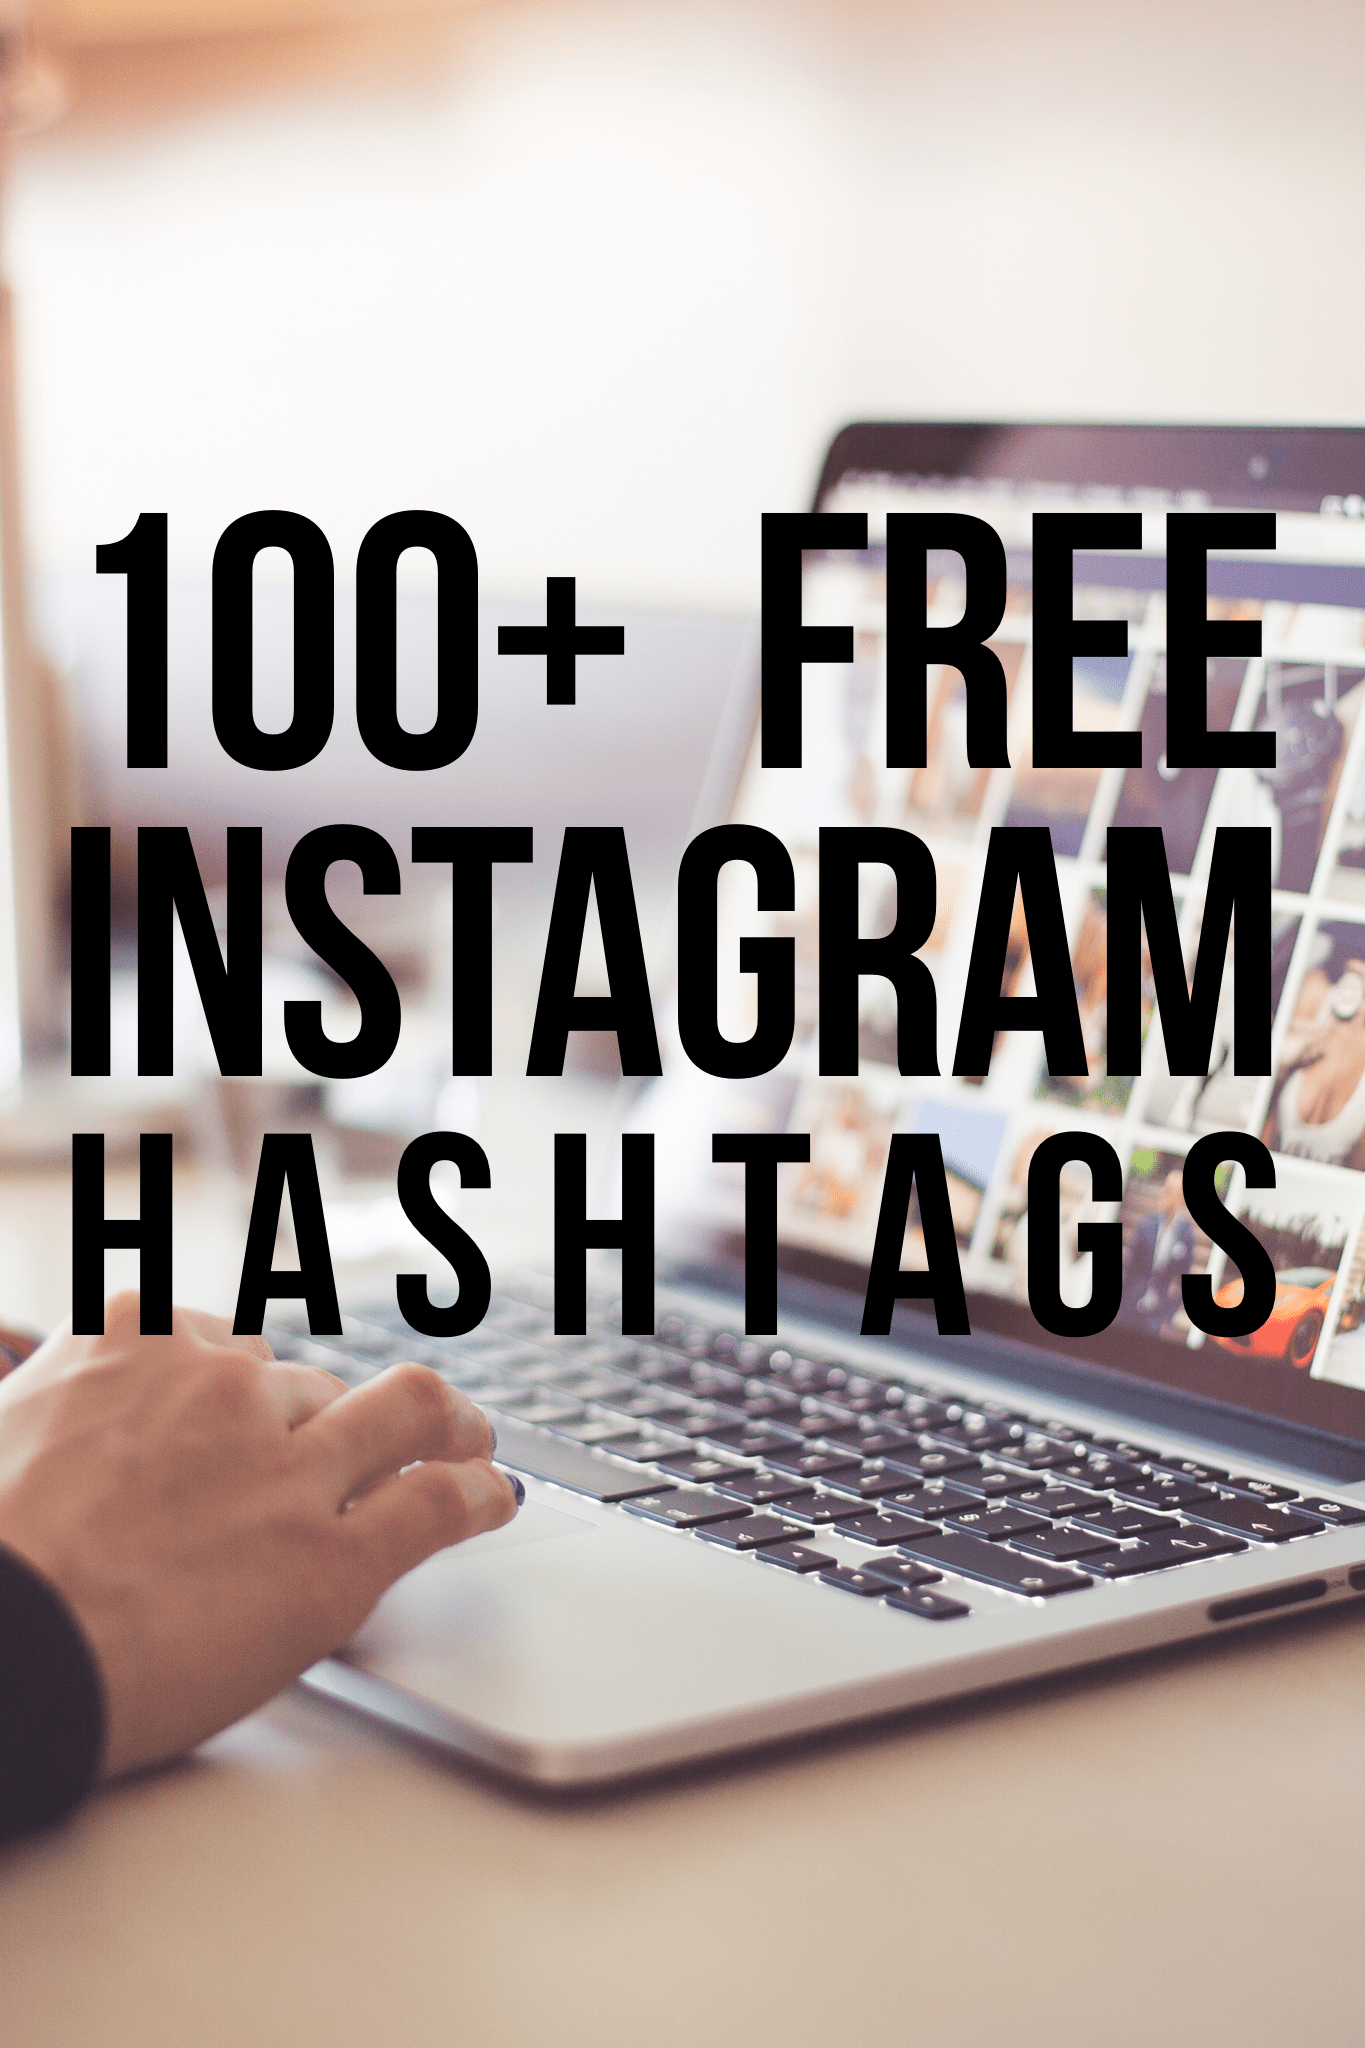 Instagram tags, best tags for Instagram